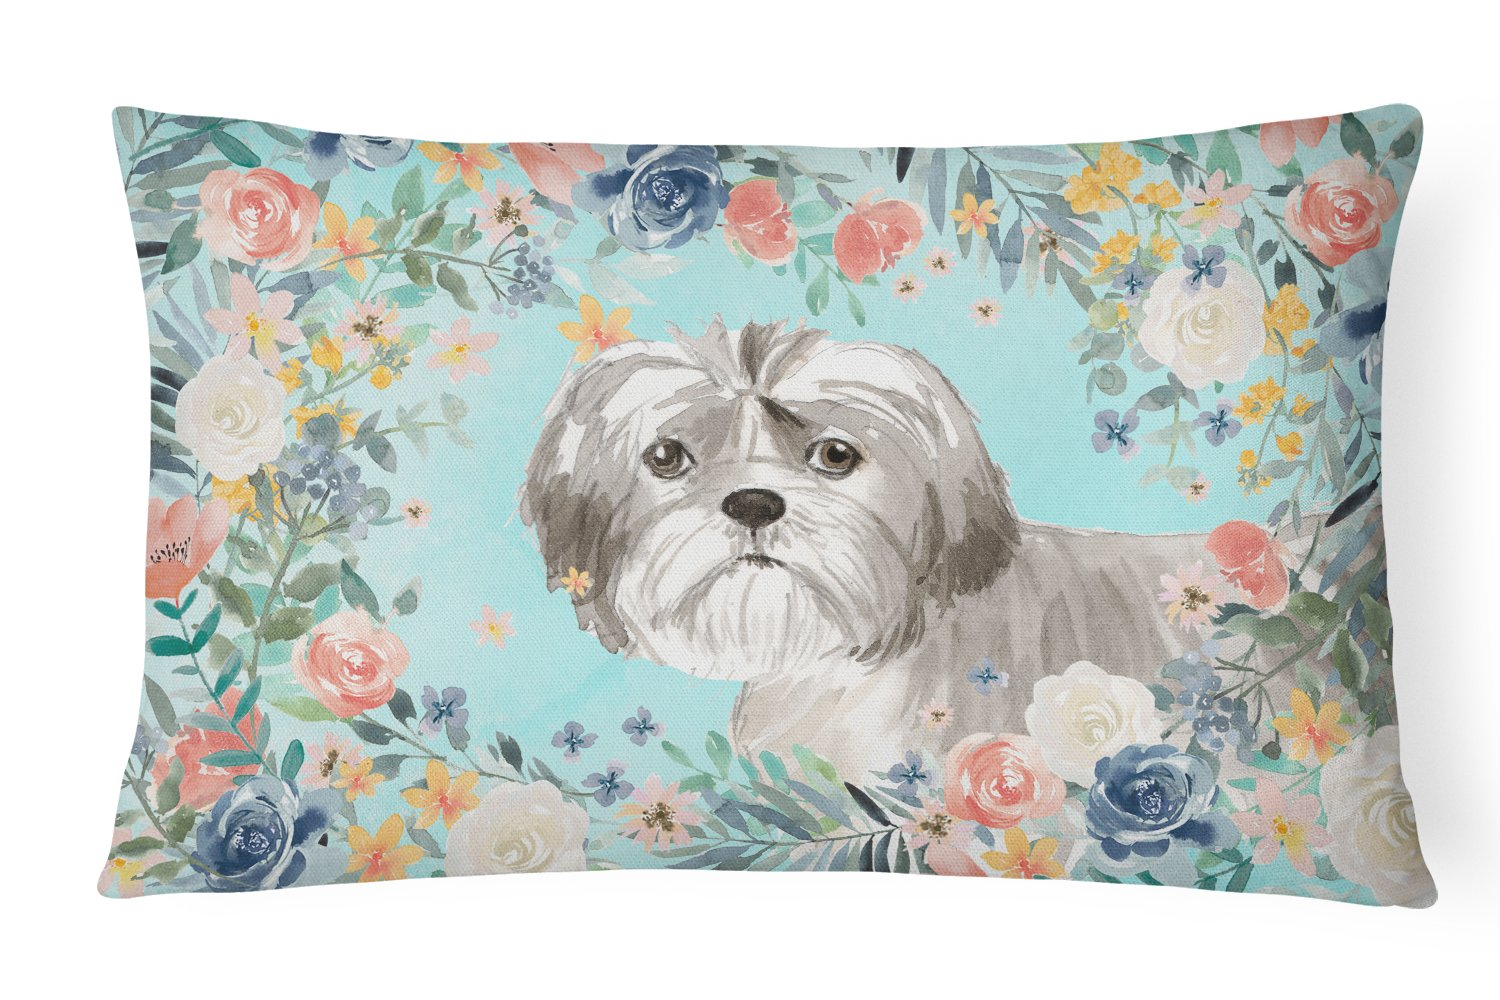 Shih Tzu Puppy Canvas Fabric Decorative Pillow CK3409PW1216 by Caroline's Treasures